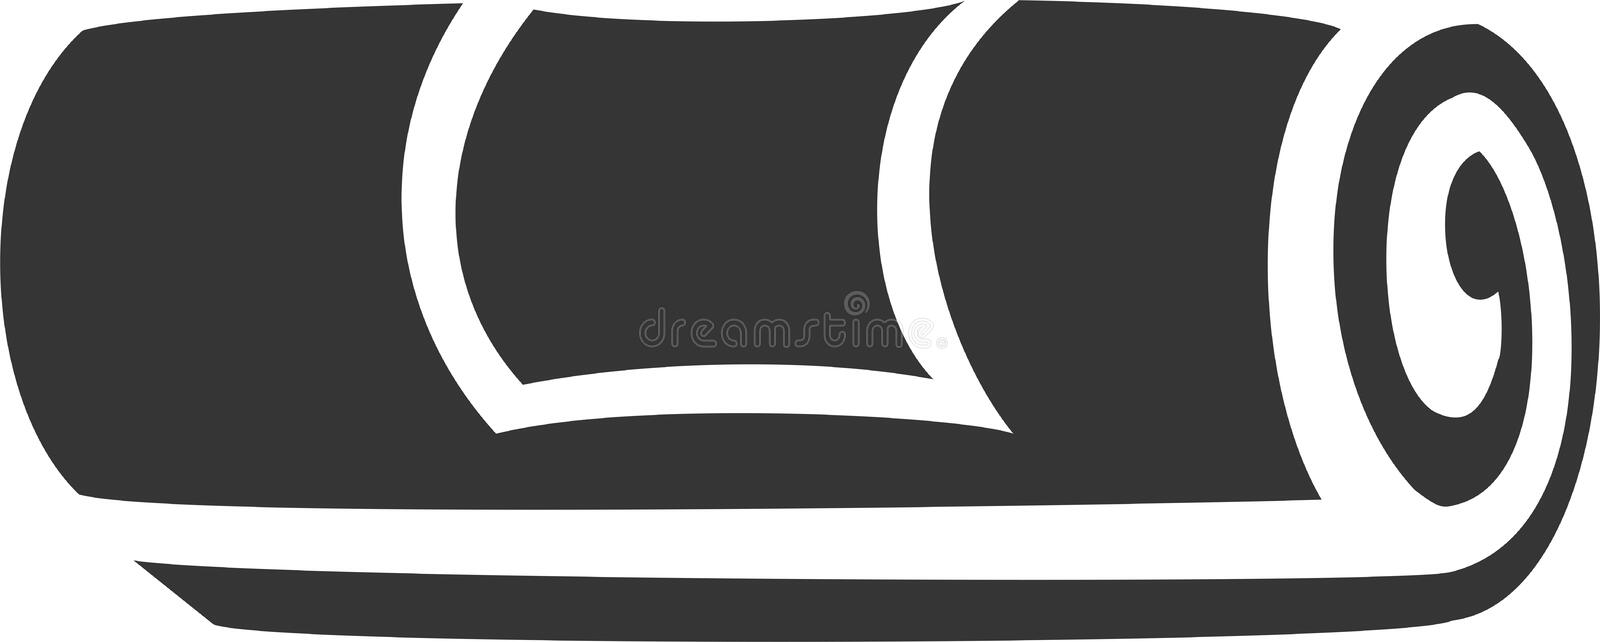 Towel Roll with Label royalty free illustration